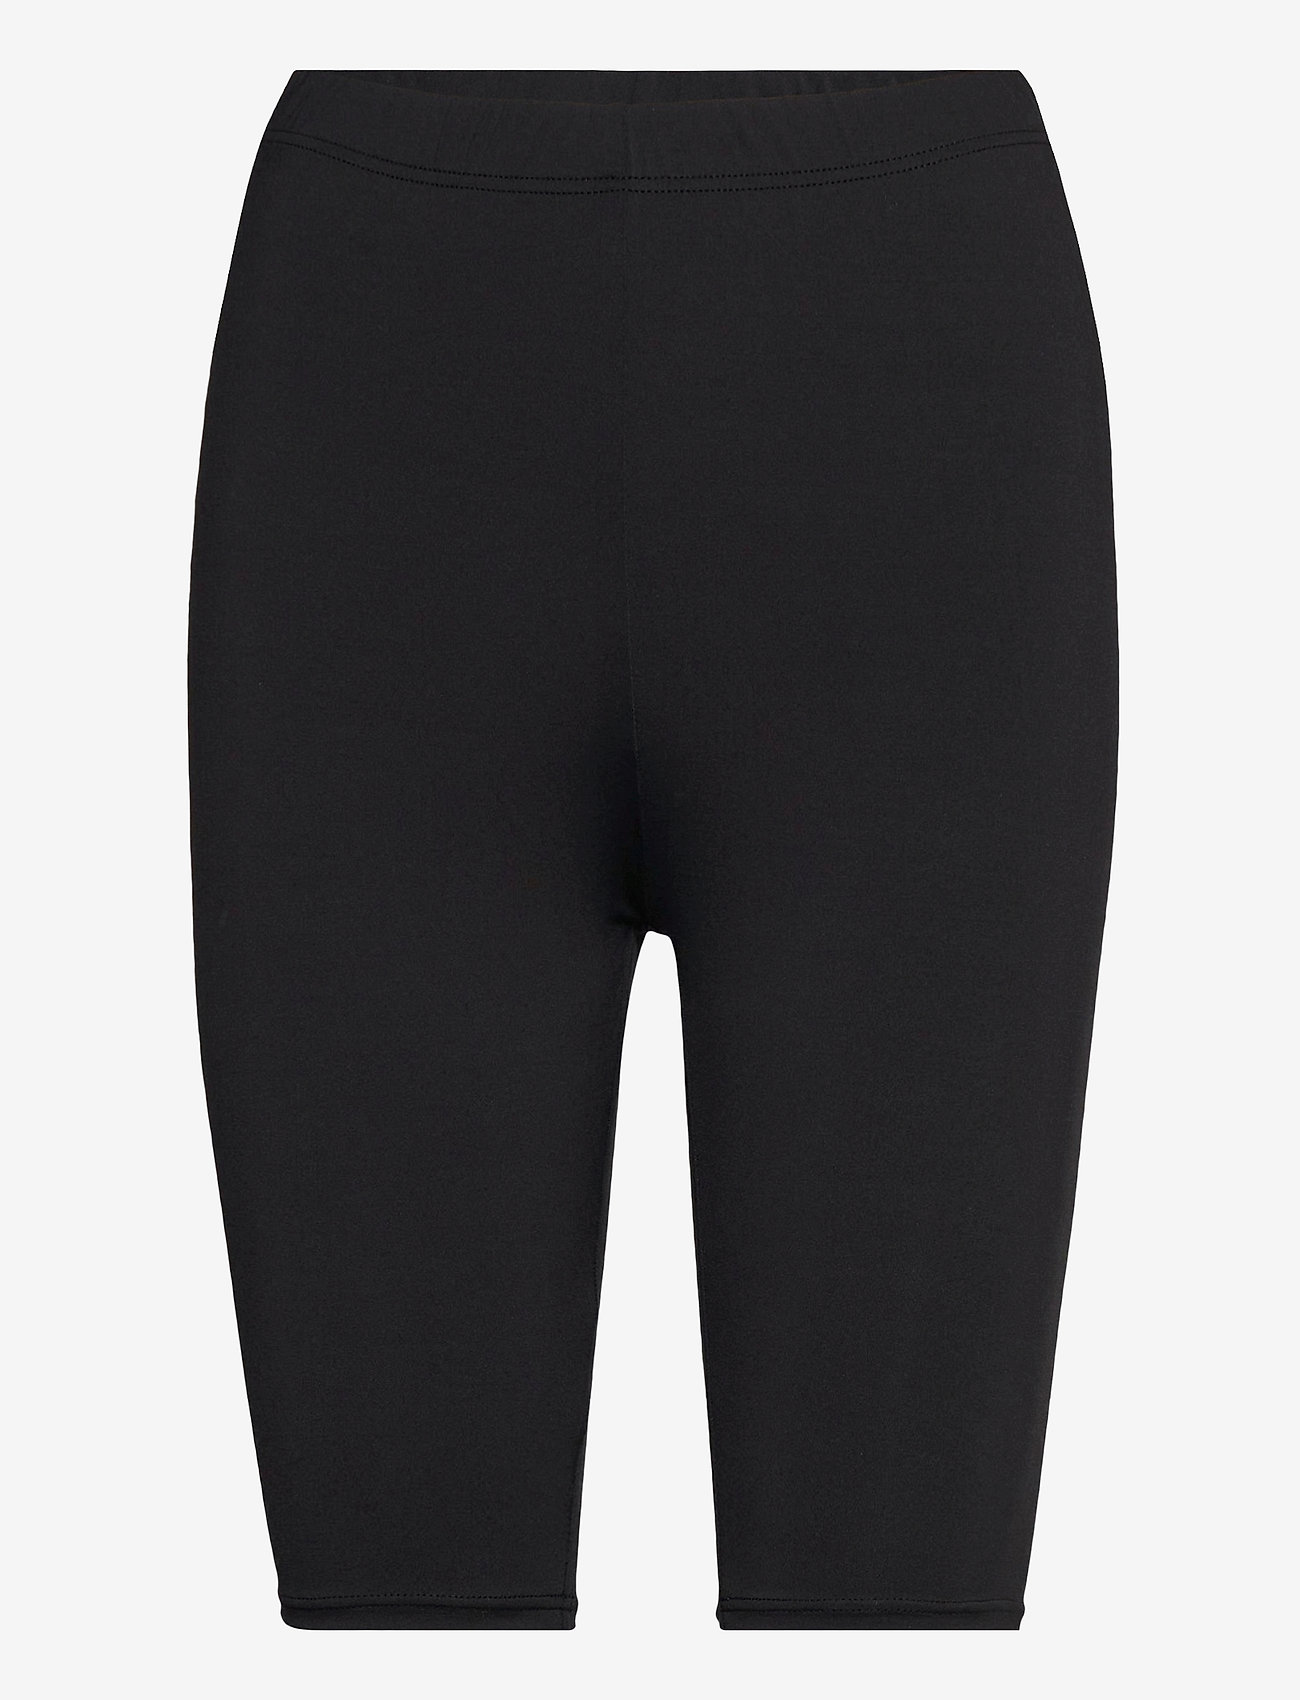 Gestuz - PiloGZ MW short tights NOOS - cykelshorts - black - 1